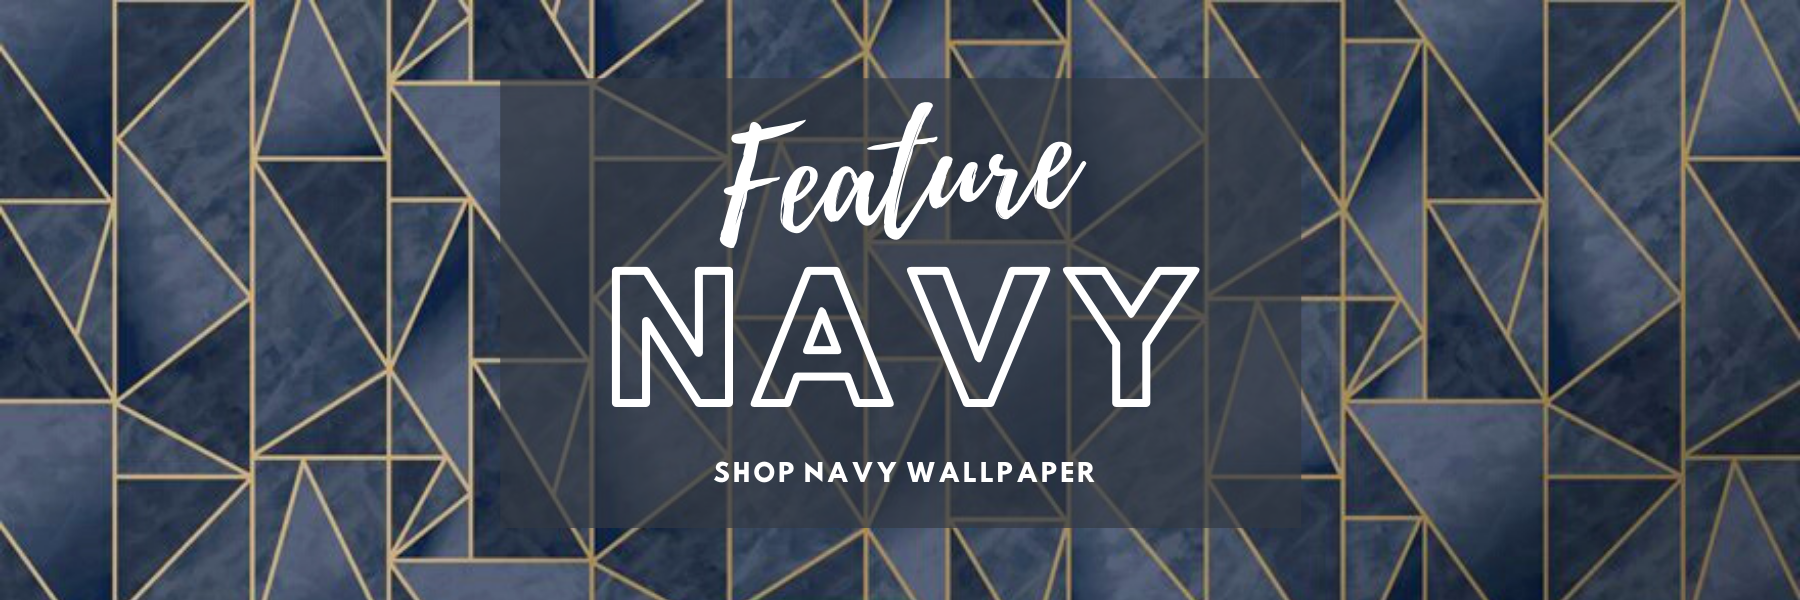 Navy Feature Wallpaper